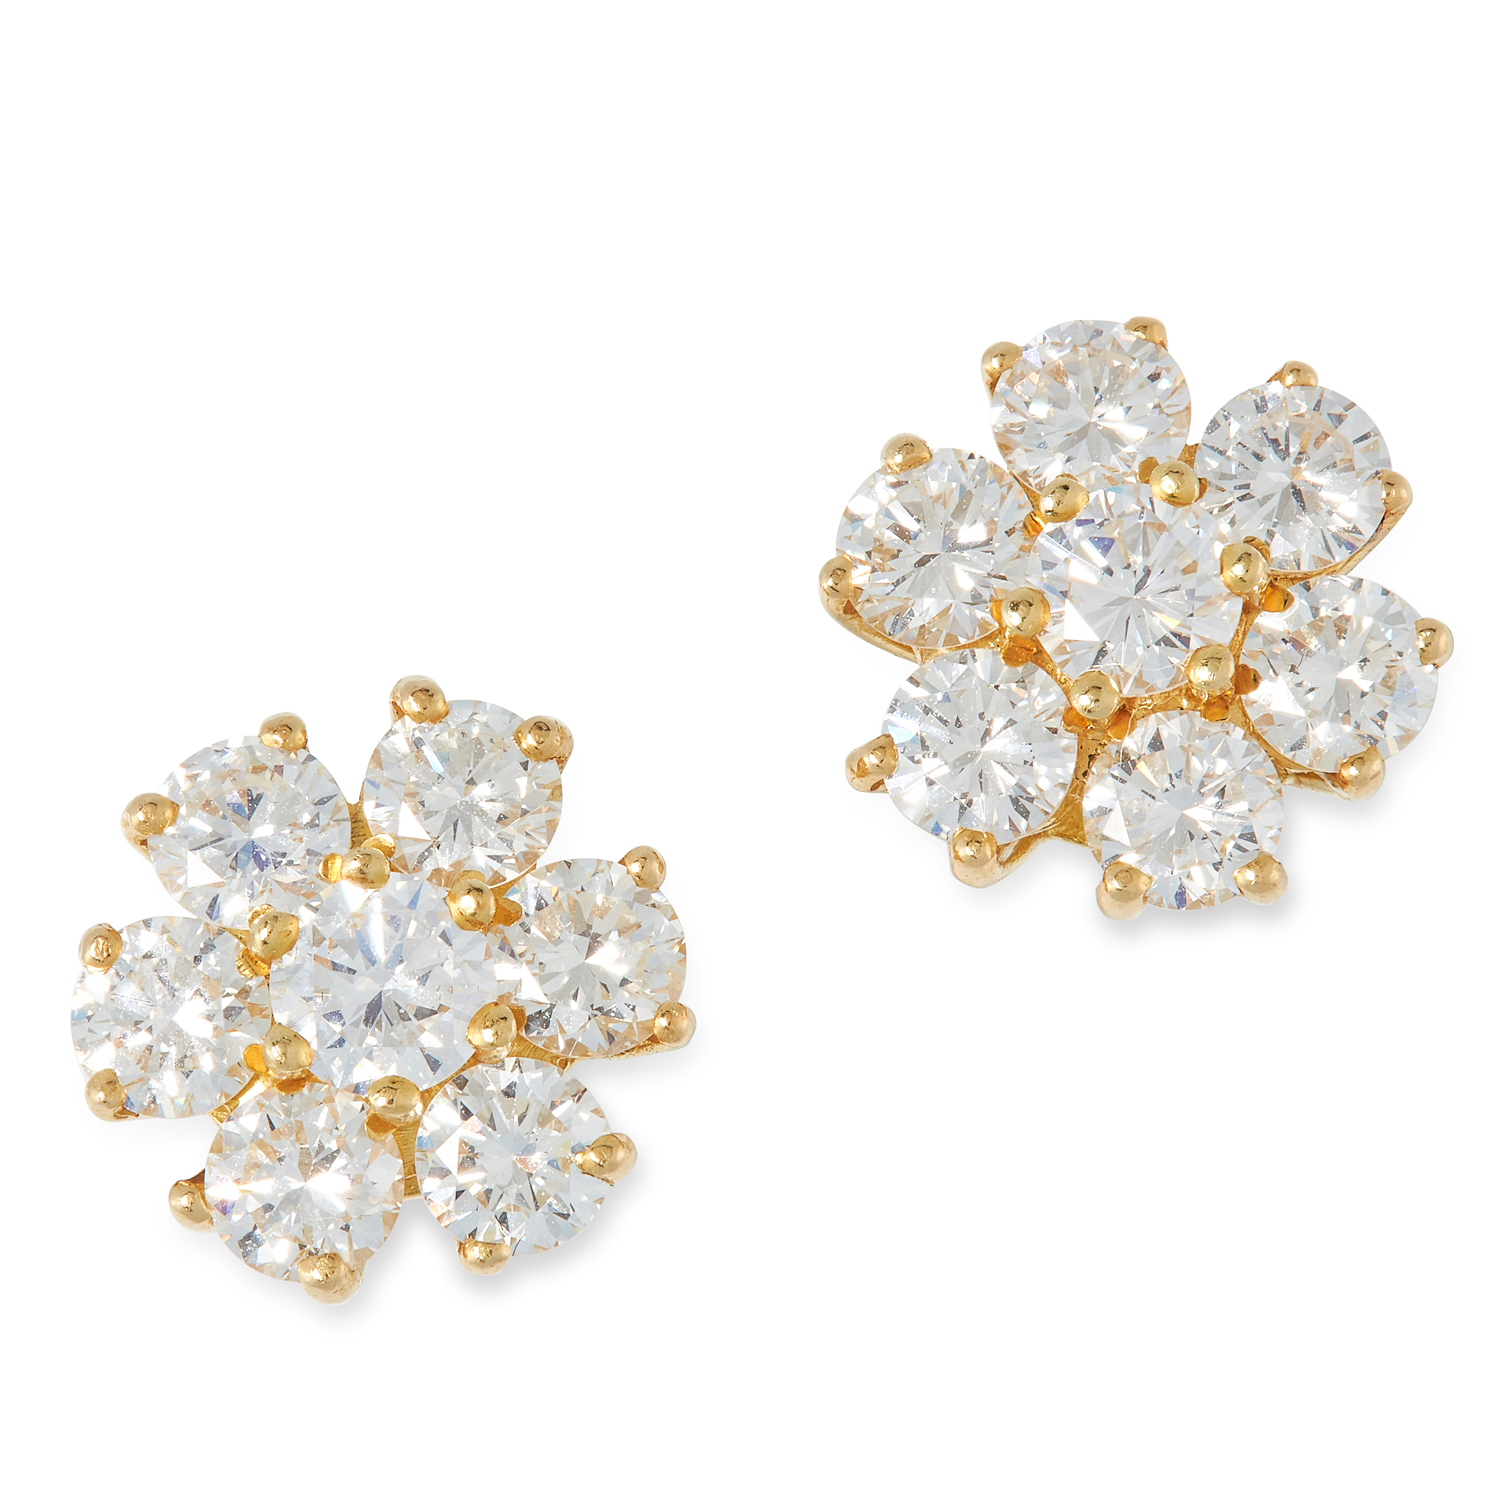 A PAIR OF DIAMOND CLUSTER EARRINGS set with round cut diamonds totalling 2.36 carats, marked